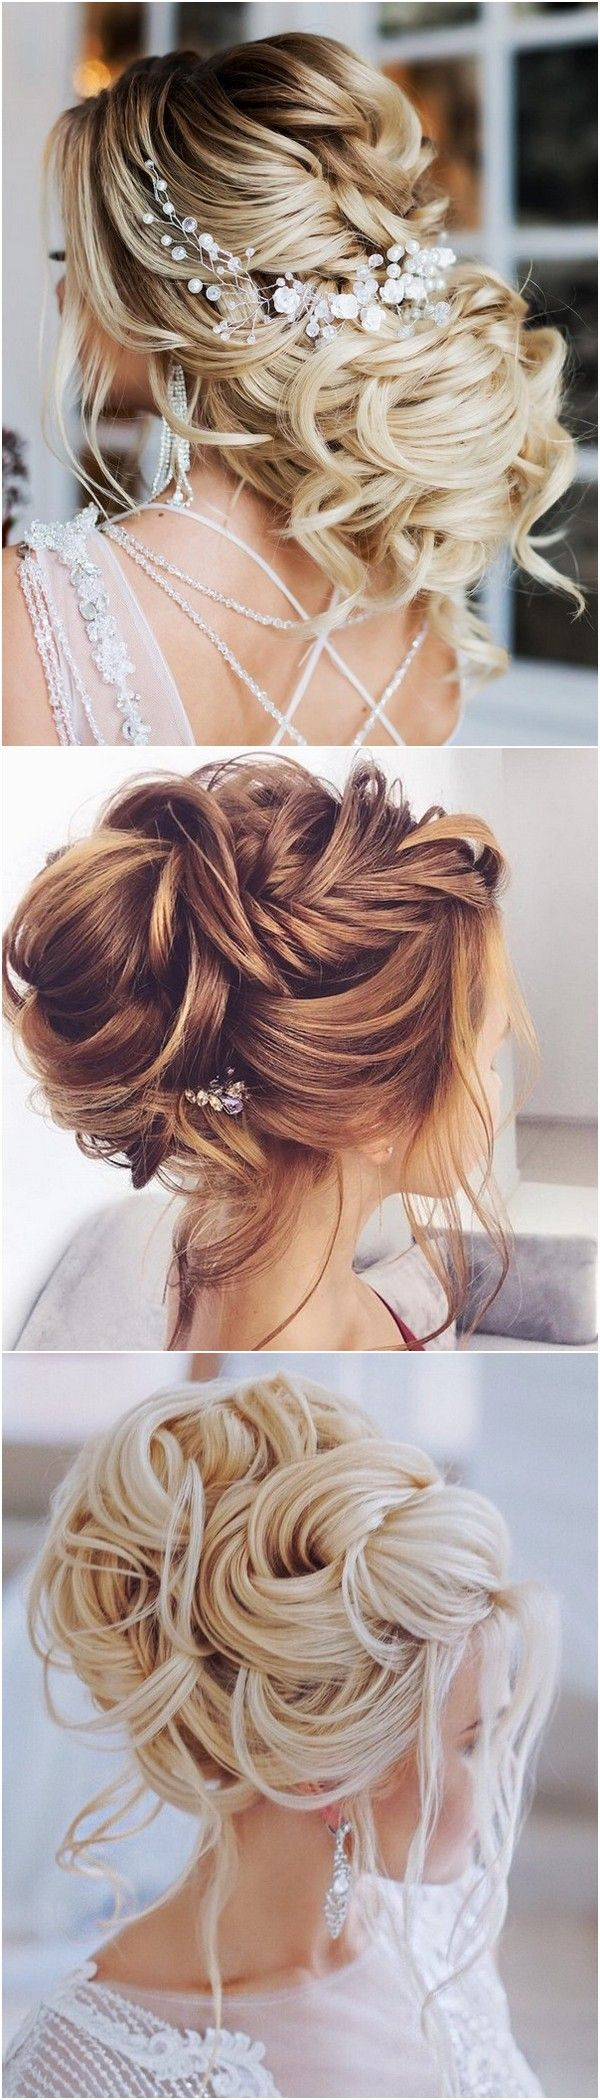 best wedding hairstyles from elstile haarmode für die braut